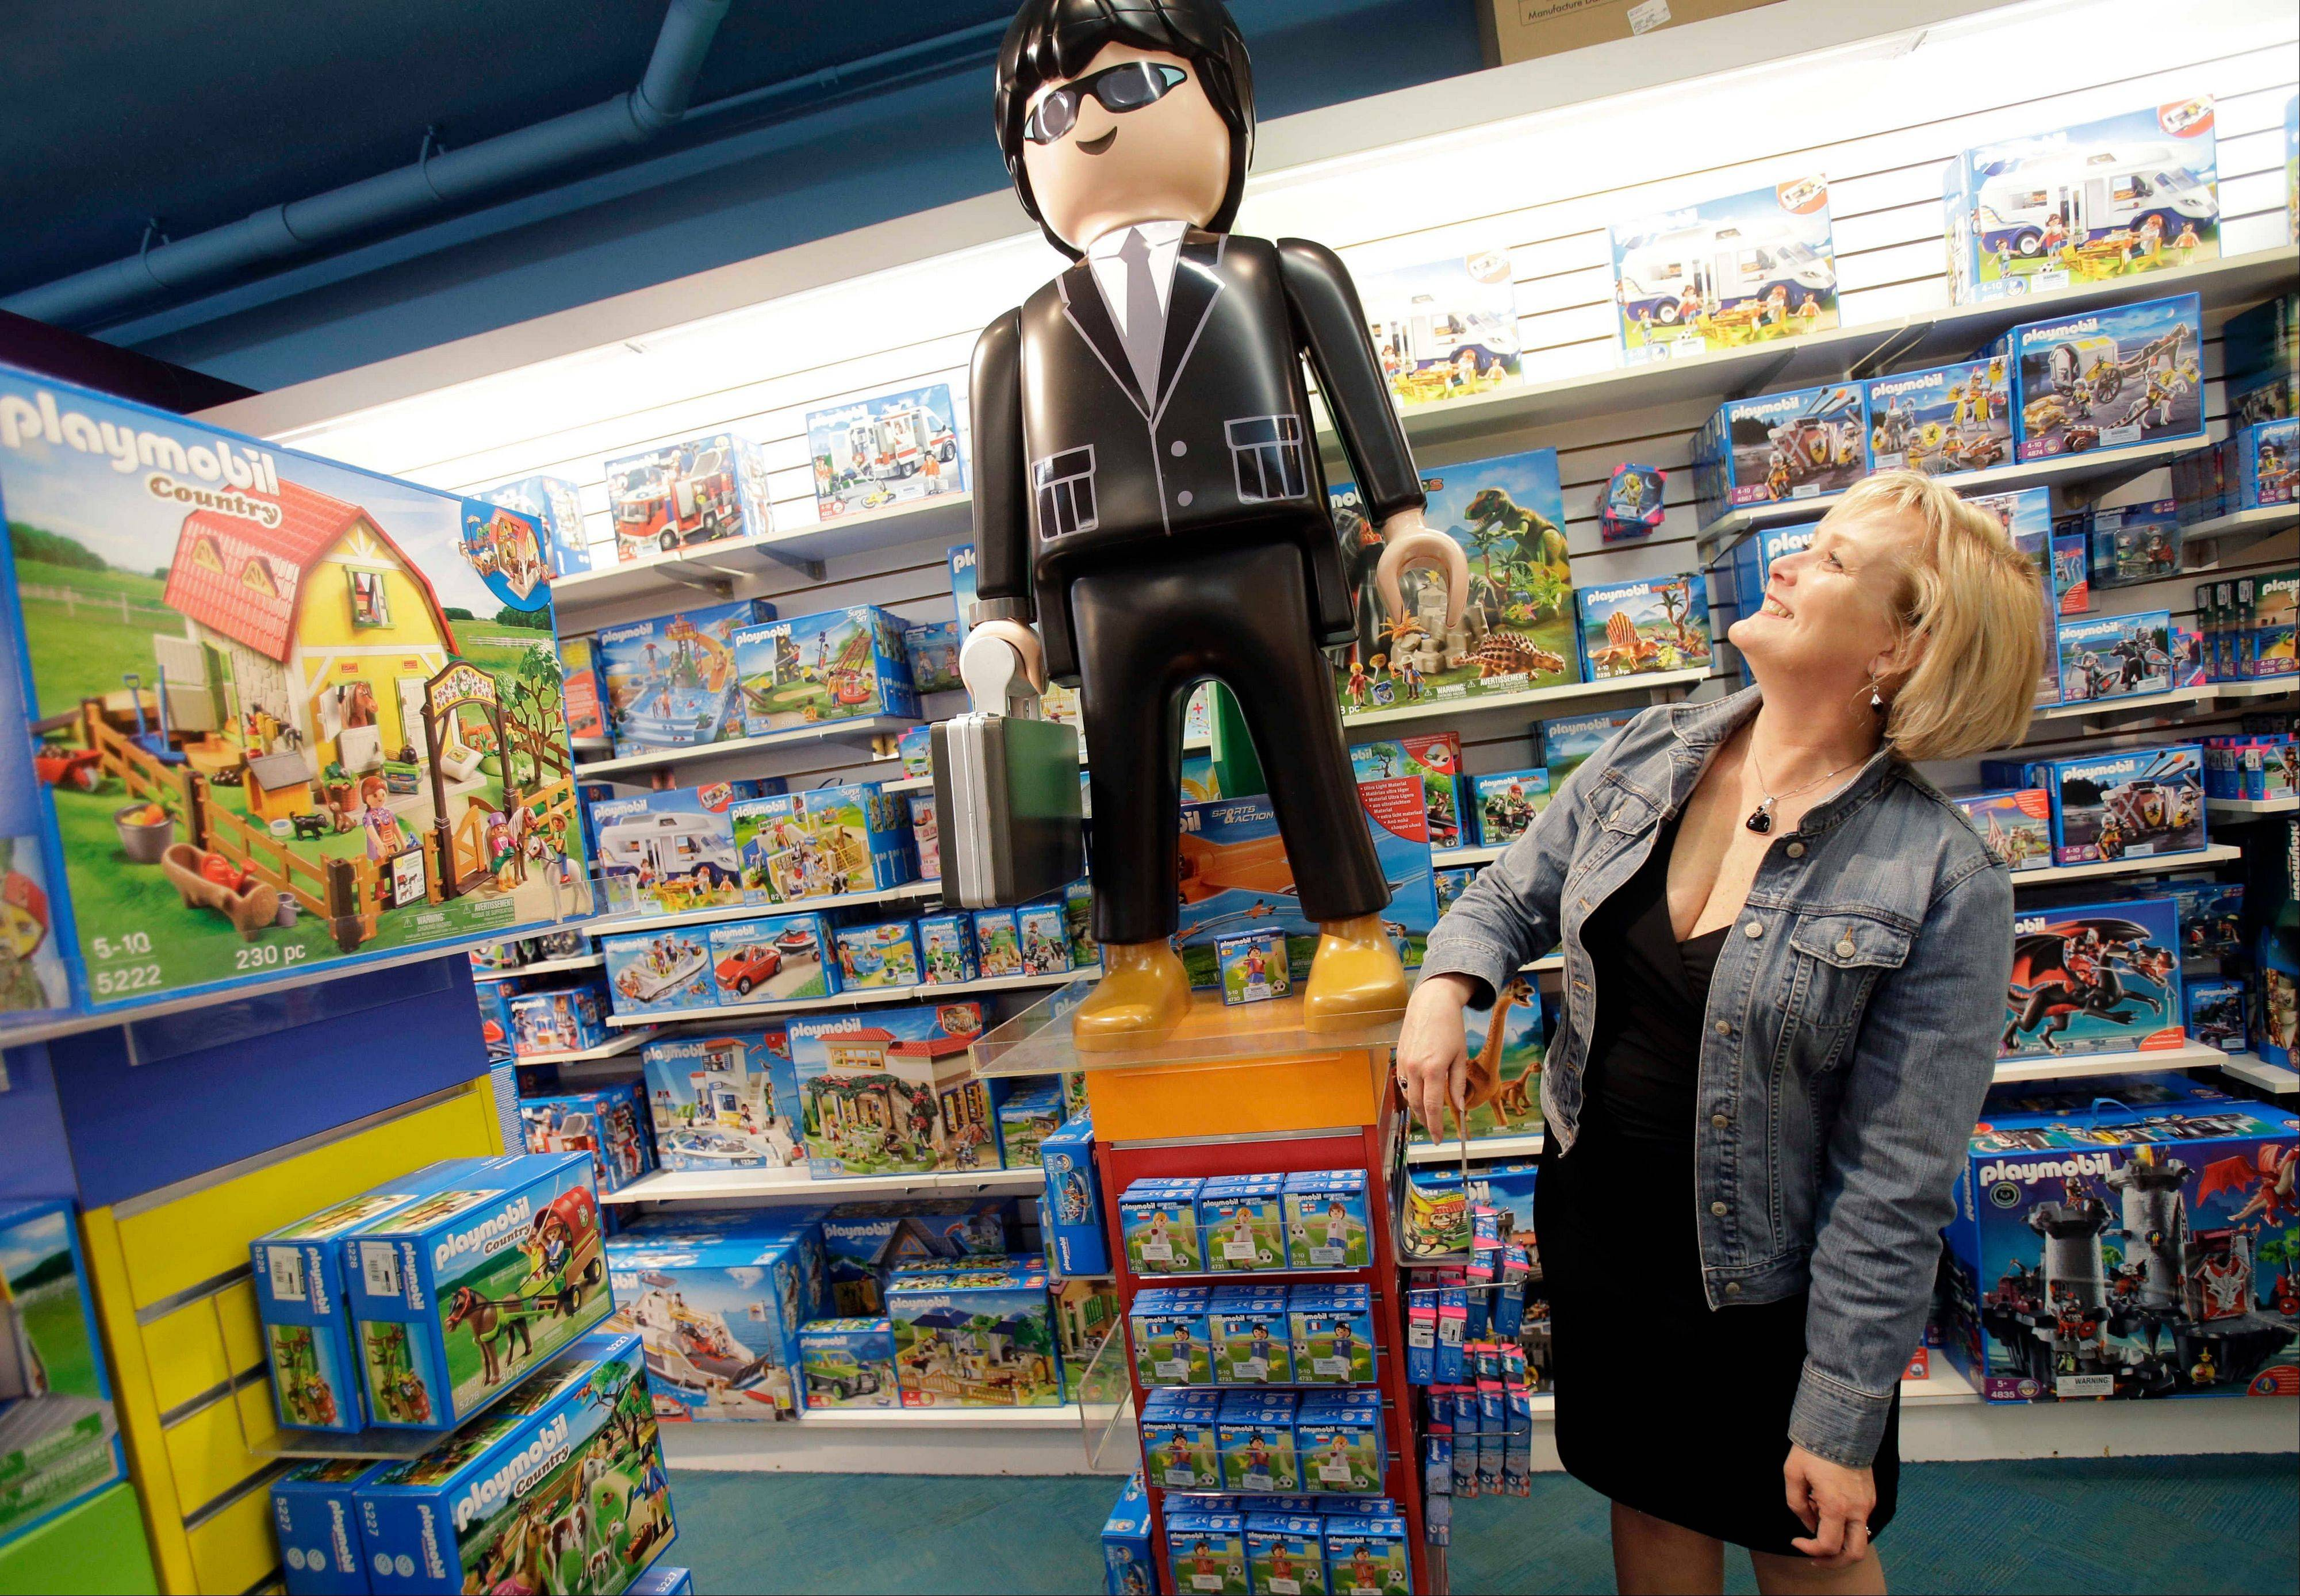 Roberta Bonoff, president and CEO of Creative Kidstuff, a toy store chain, at the store in St. Paul, Minn. The toy retailer based in Minneapolis just expanded by buying a 26-year-old online and catalog toy retailer, Sensational Beginnings. Bonoff said the owner was tired and ready to sell.